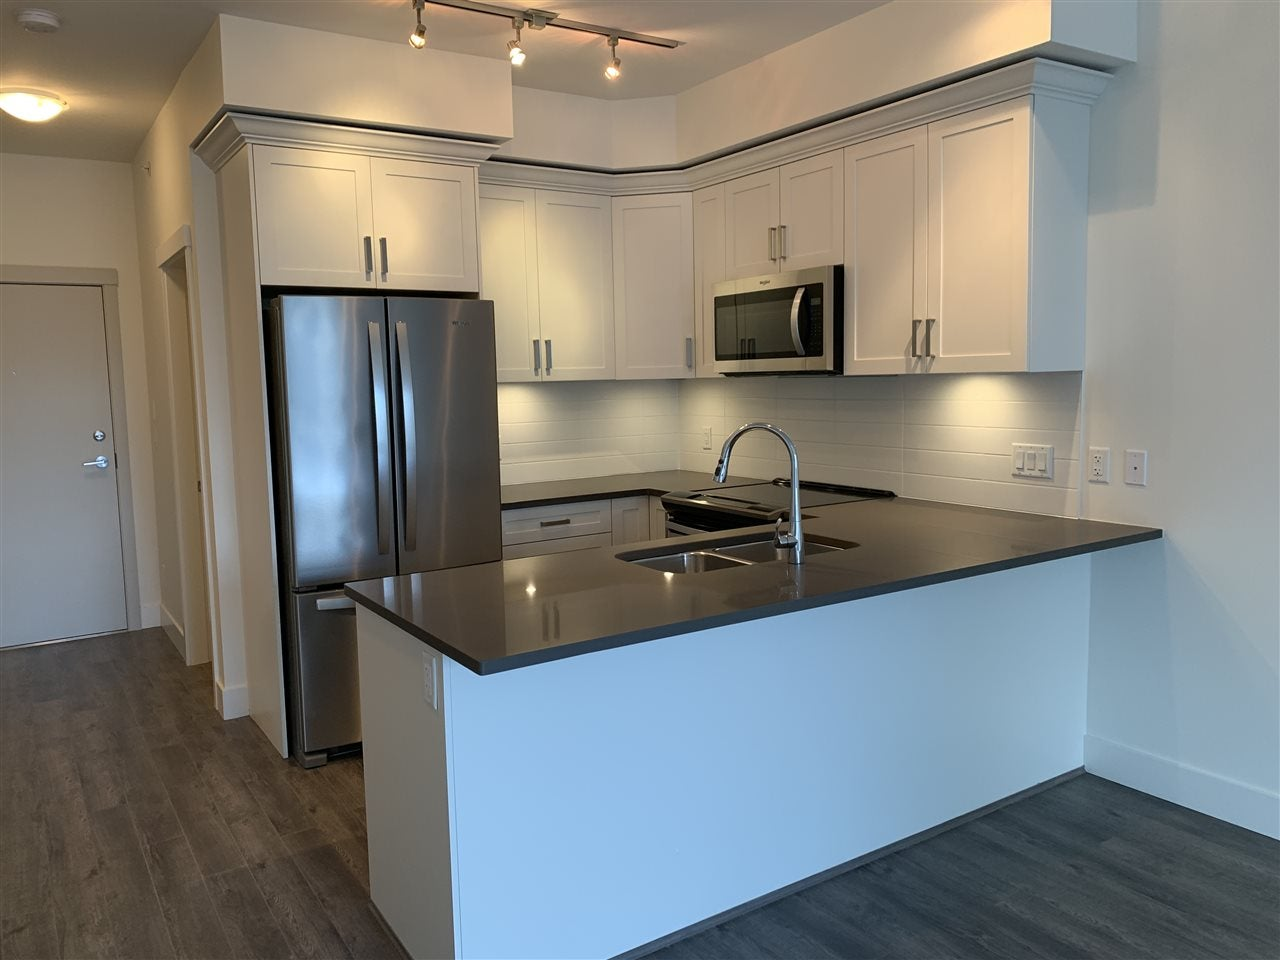 403 2436 KELLY AVENUE - Central Pt Coquitlam Apartment/Condo for sale, 1 Bedroom (R2481447) - #3